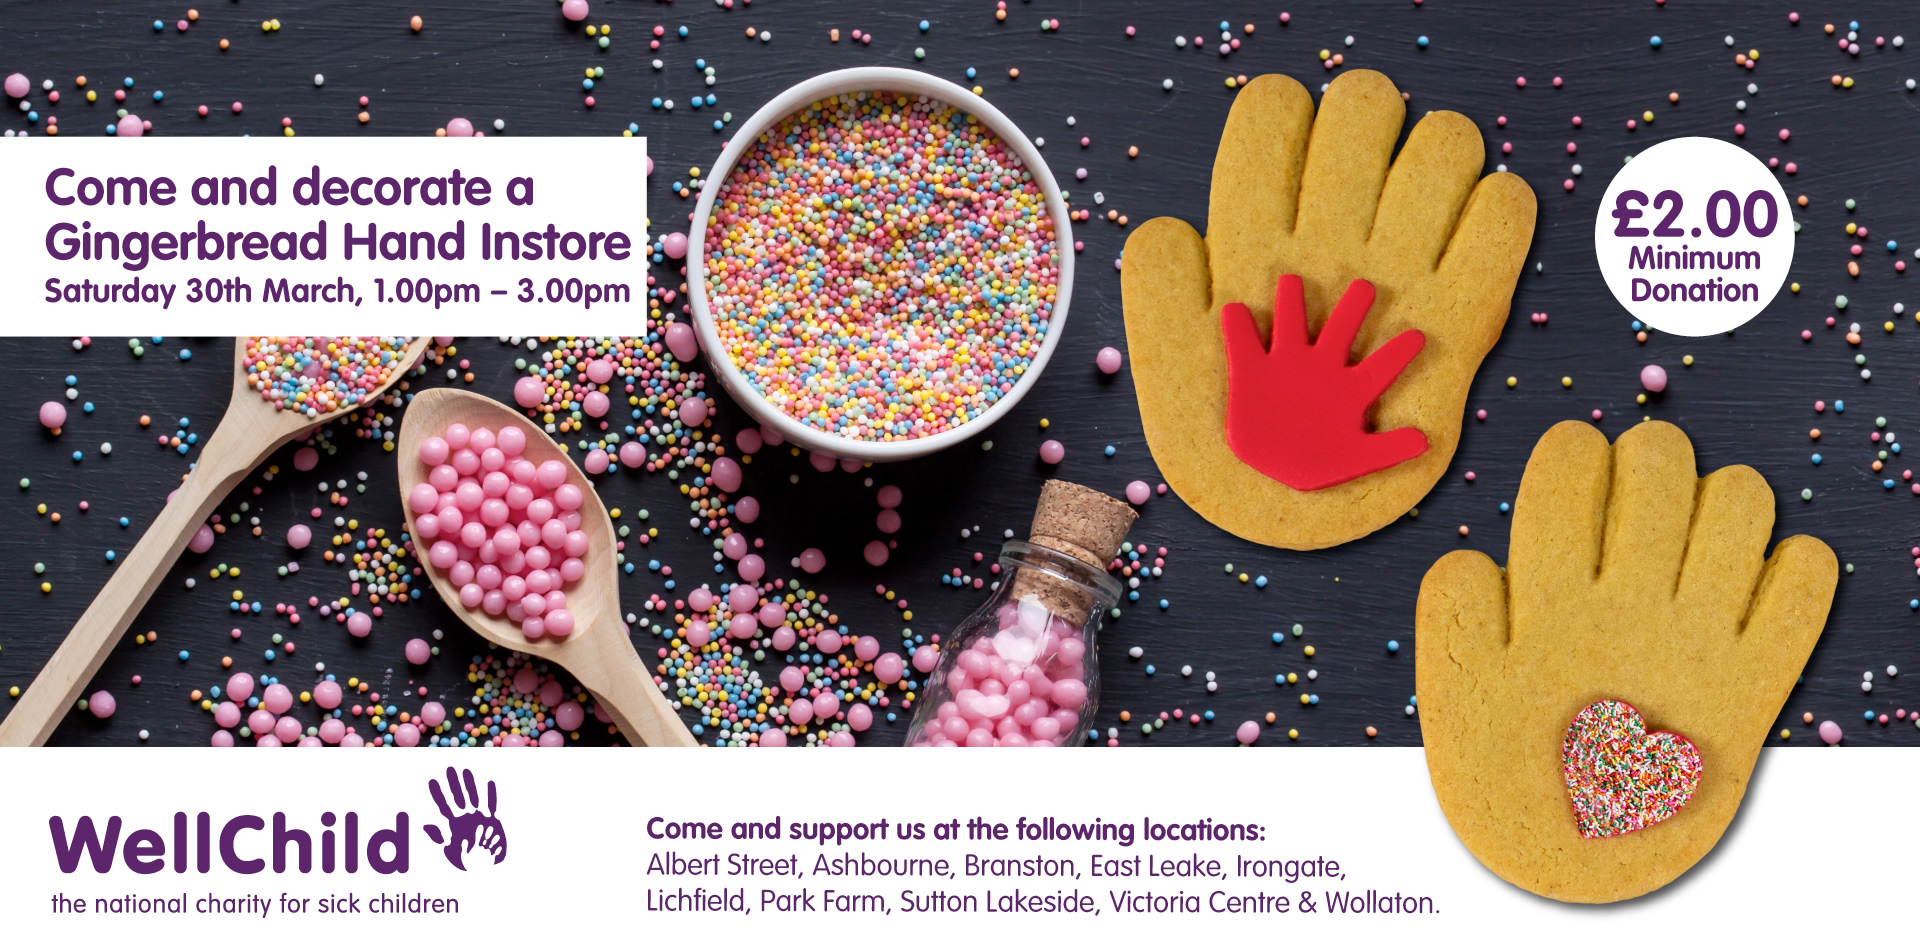 Come and decorate a Gingerbread Hand instore - Saturday 30th March, 1pm to 3pm